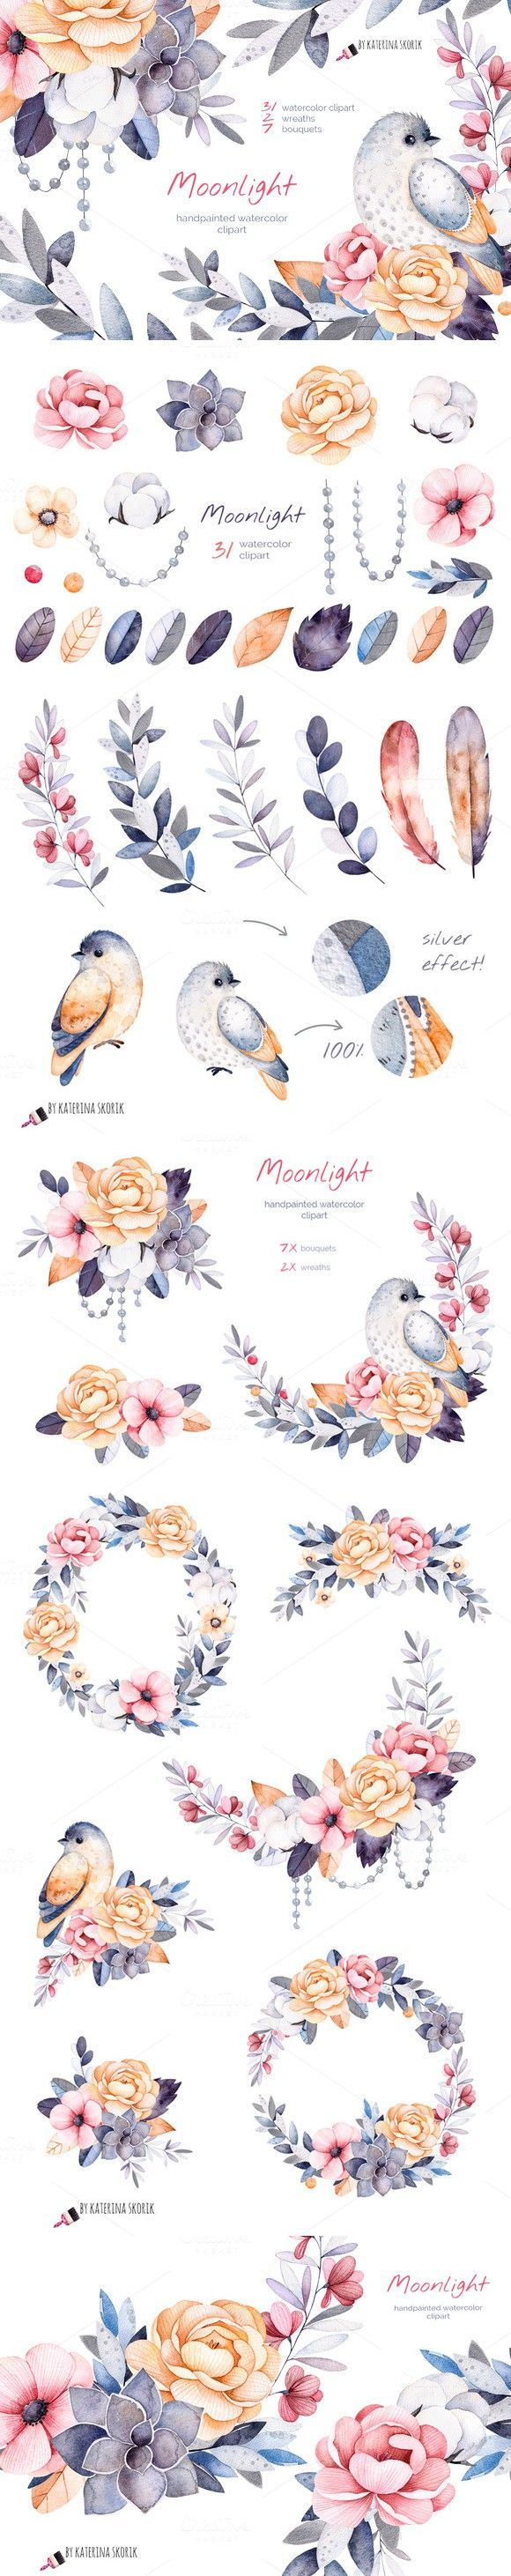 Moonlight. Watercolor collection. Watercolor Flowers. $15.00